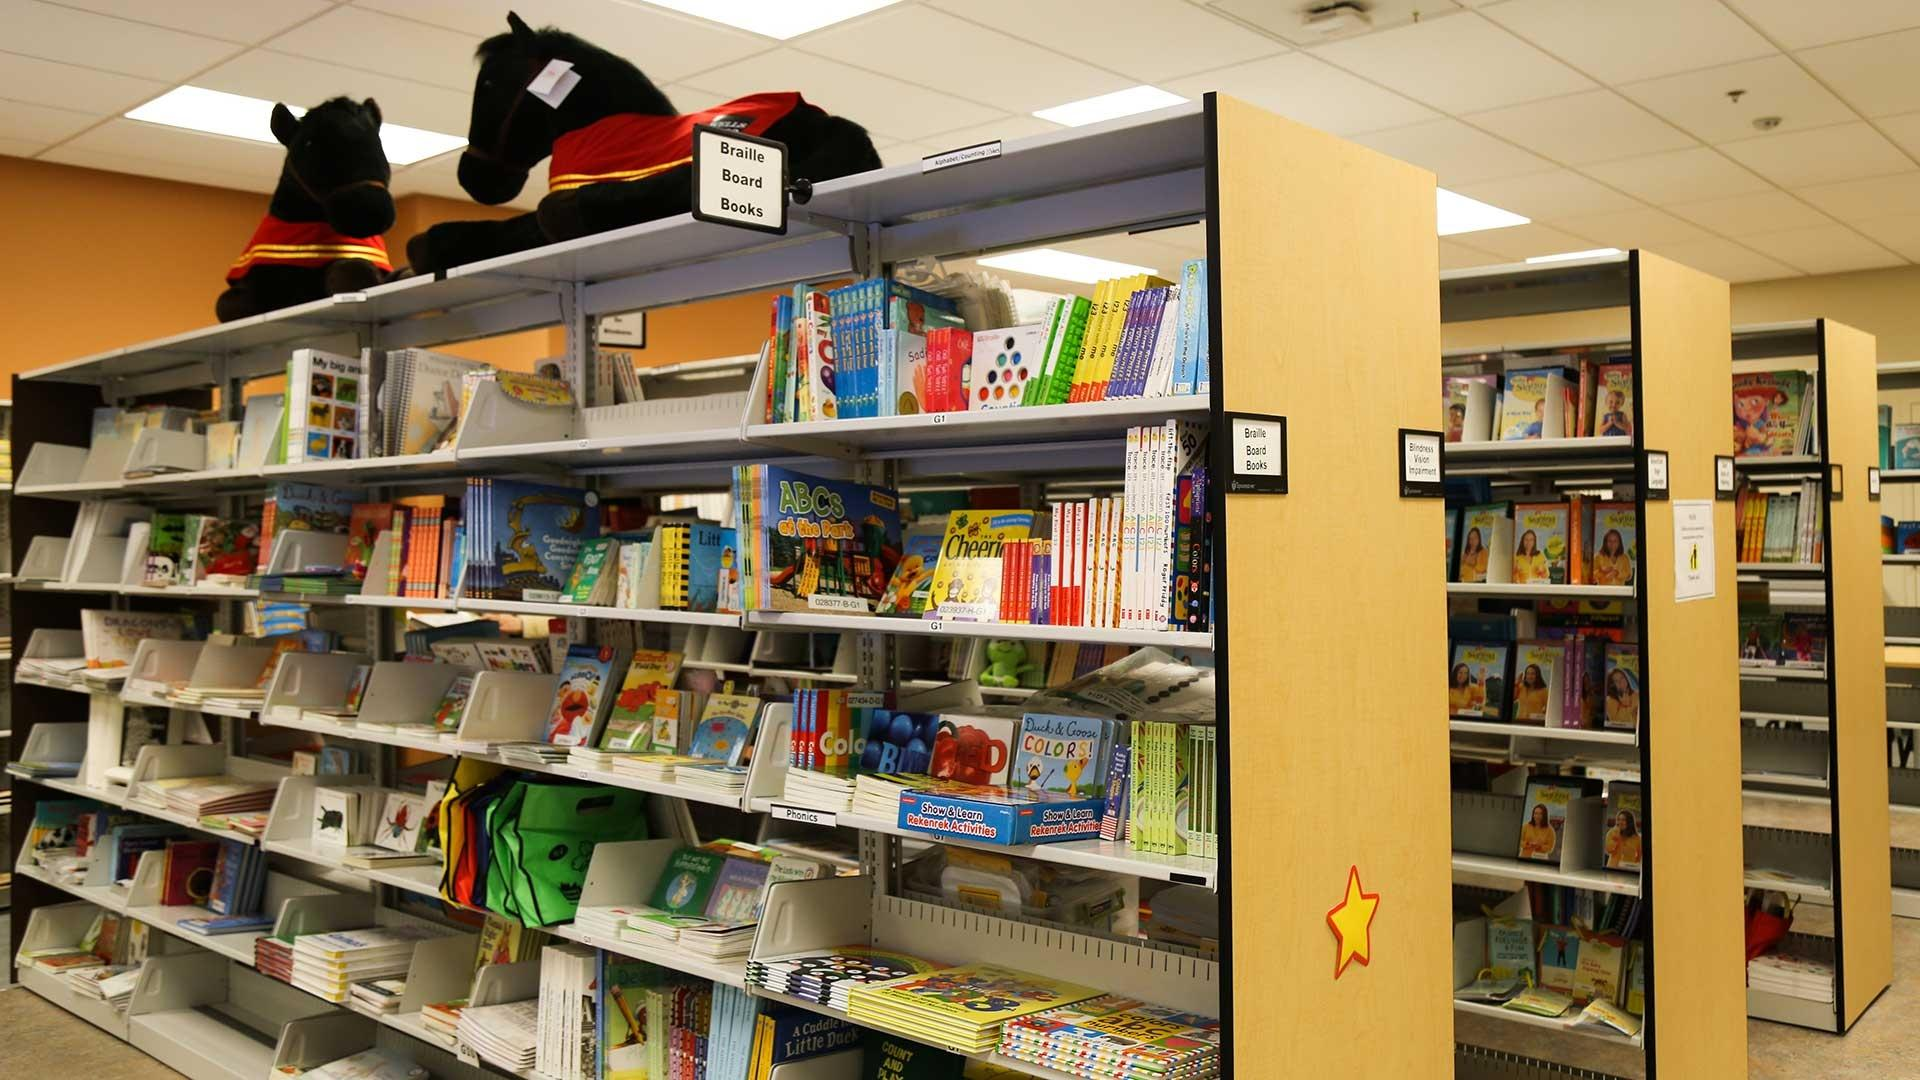 SPECIAL NEEDS RESOURCE LIBRARY